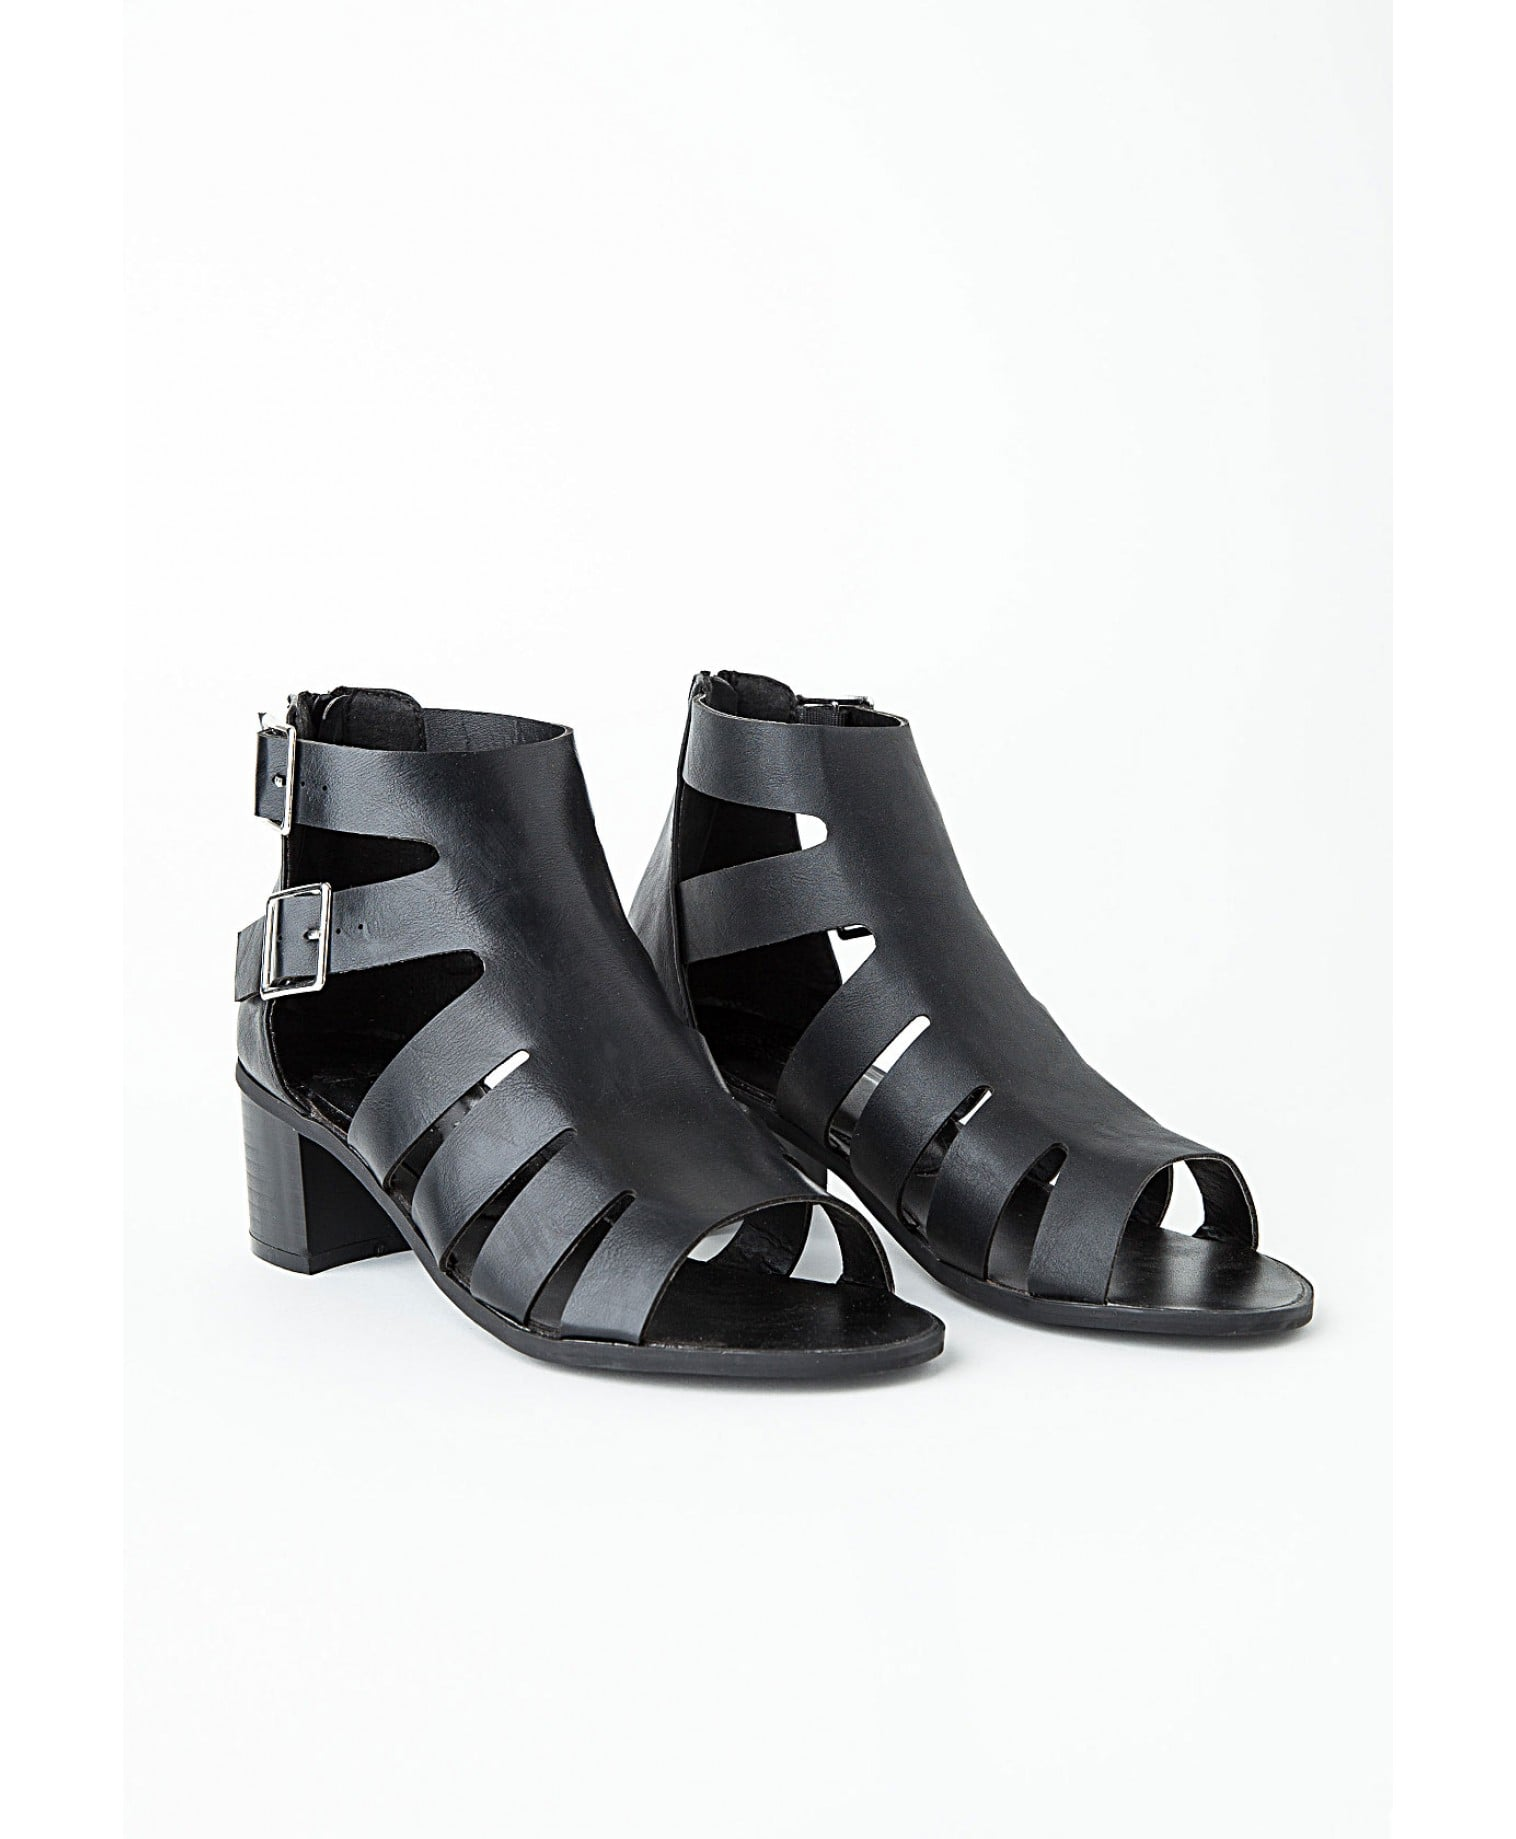 MissGuided Cutout Sandals